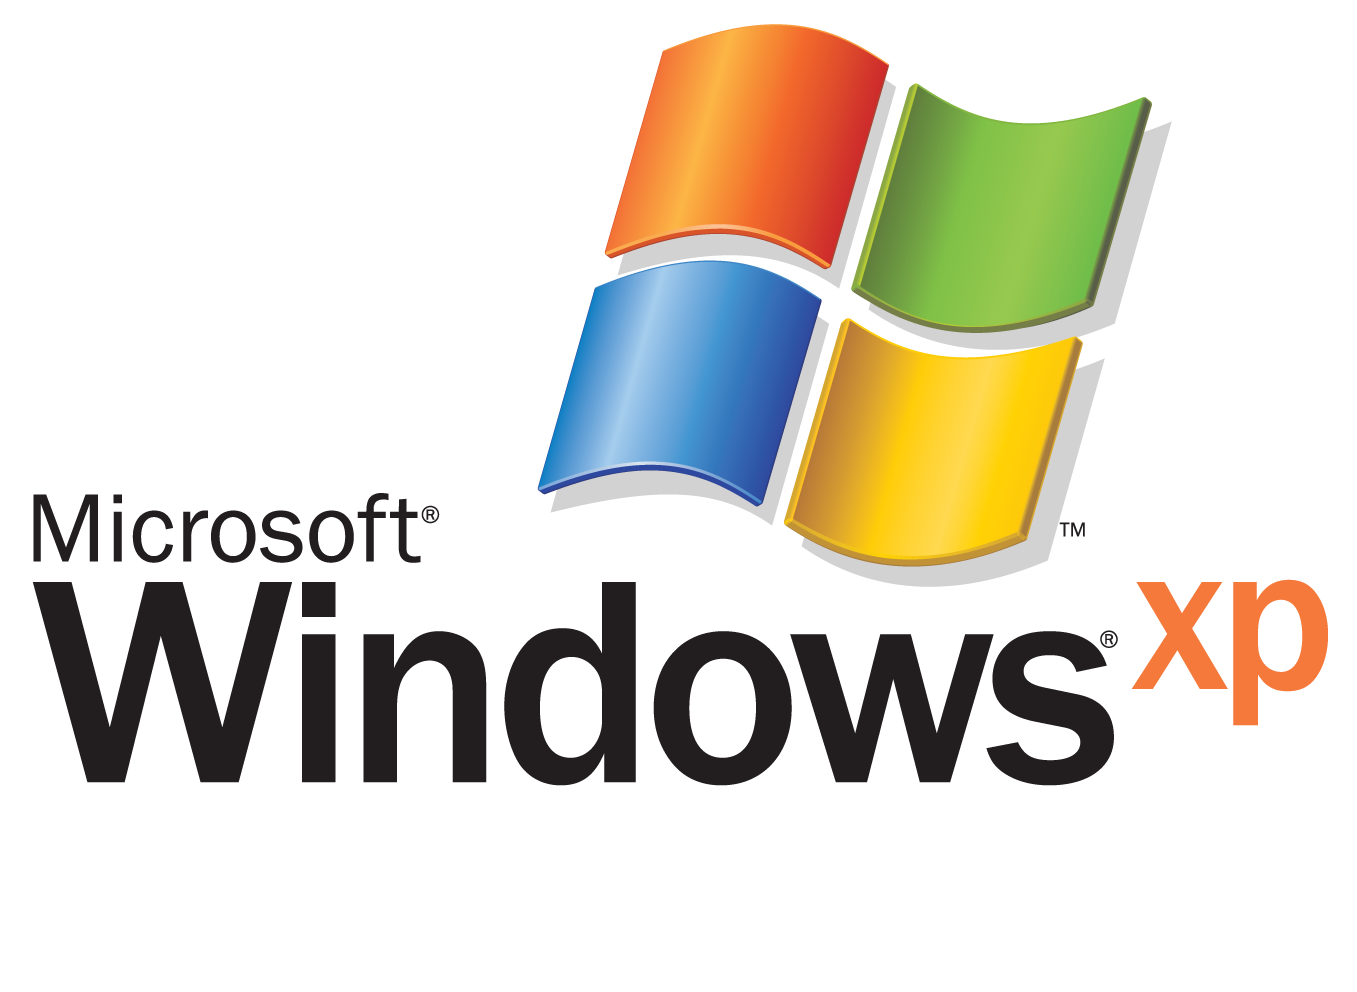 Berakhirnya Sistem Windows XP